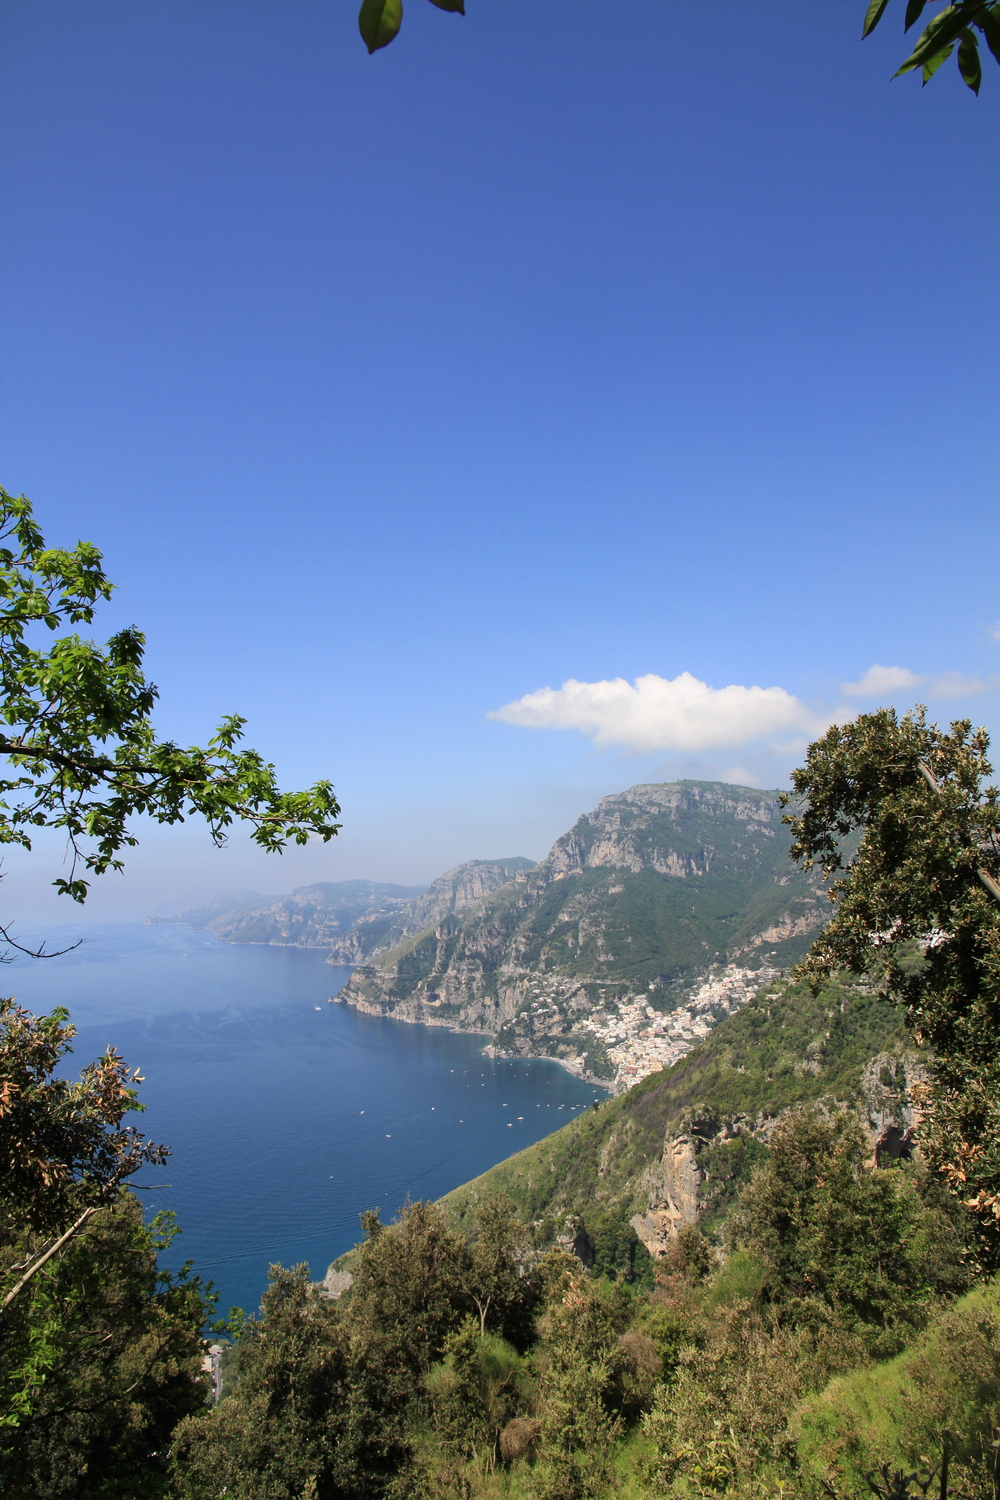 A photo taken while completing 'The Walk of the Gods,' on the Amalfi Coast, Italy in 2014 - Just STUNNING!